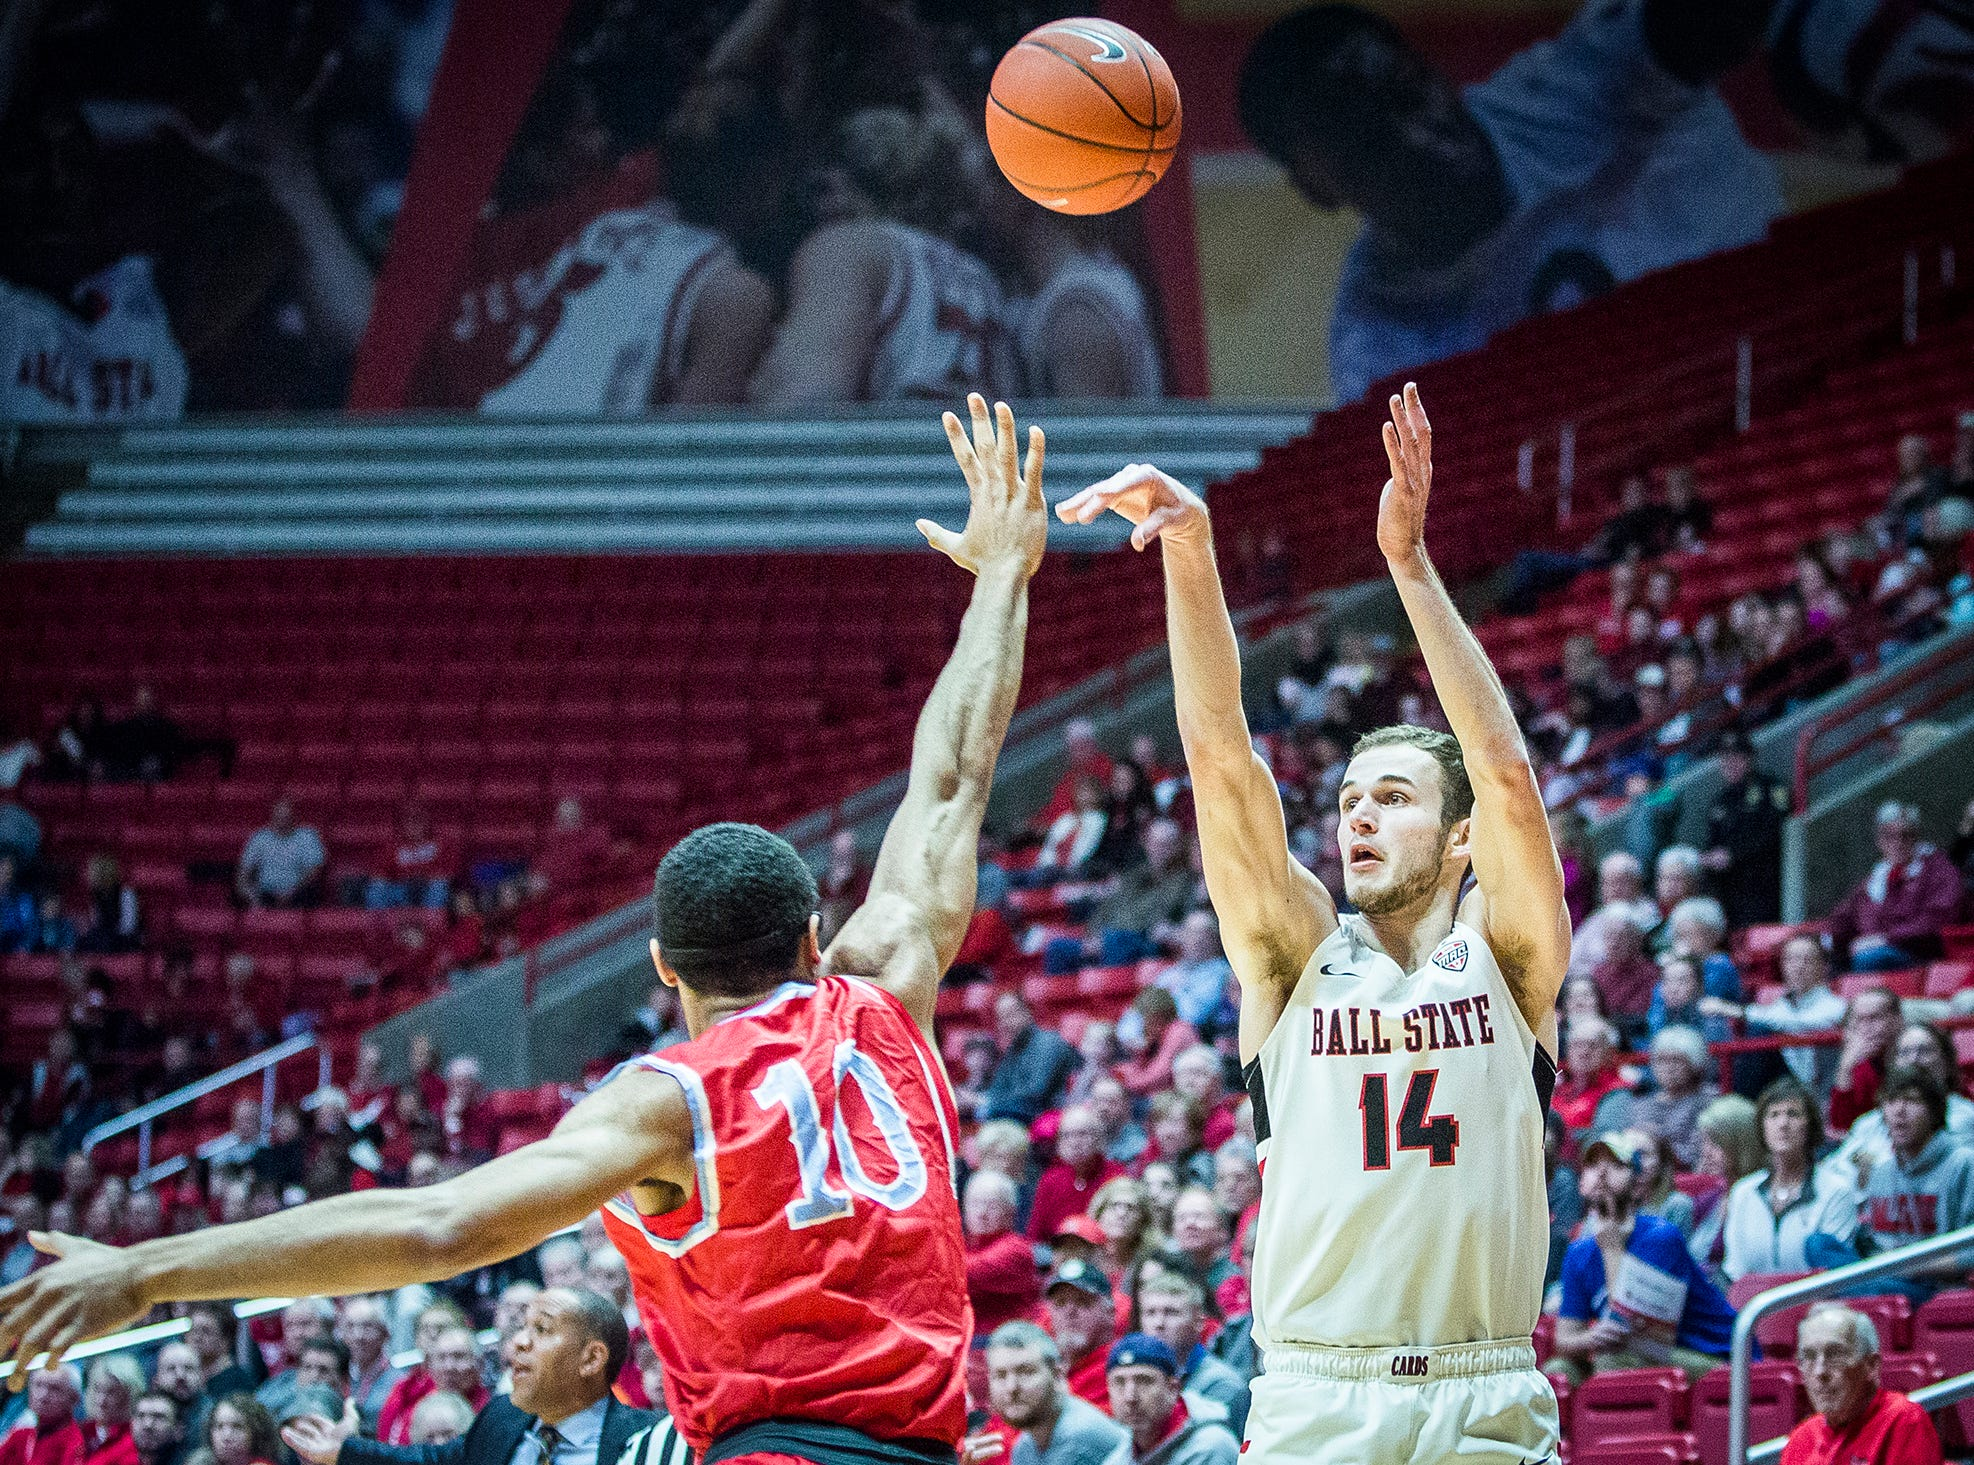 Ball State's Kyle Mallers shoots past Delaware State's defense during their game at Worthen Arena Saturday, Dec. 29, 2018.